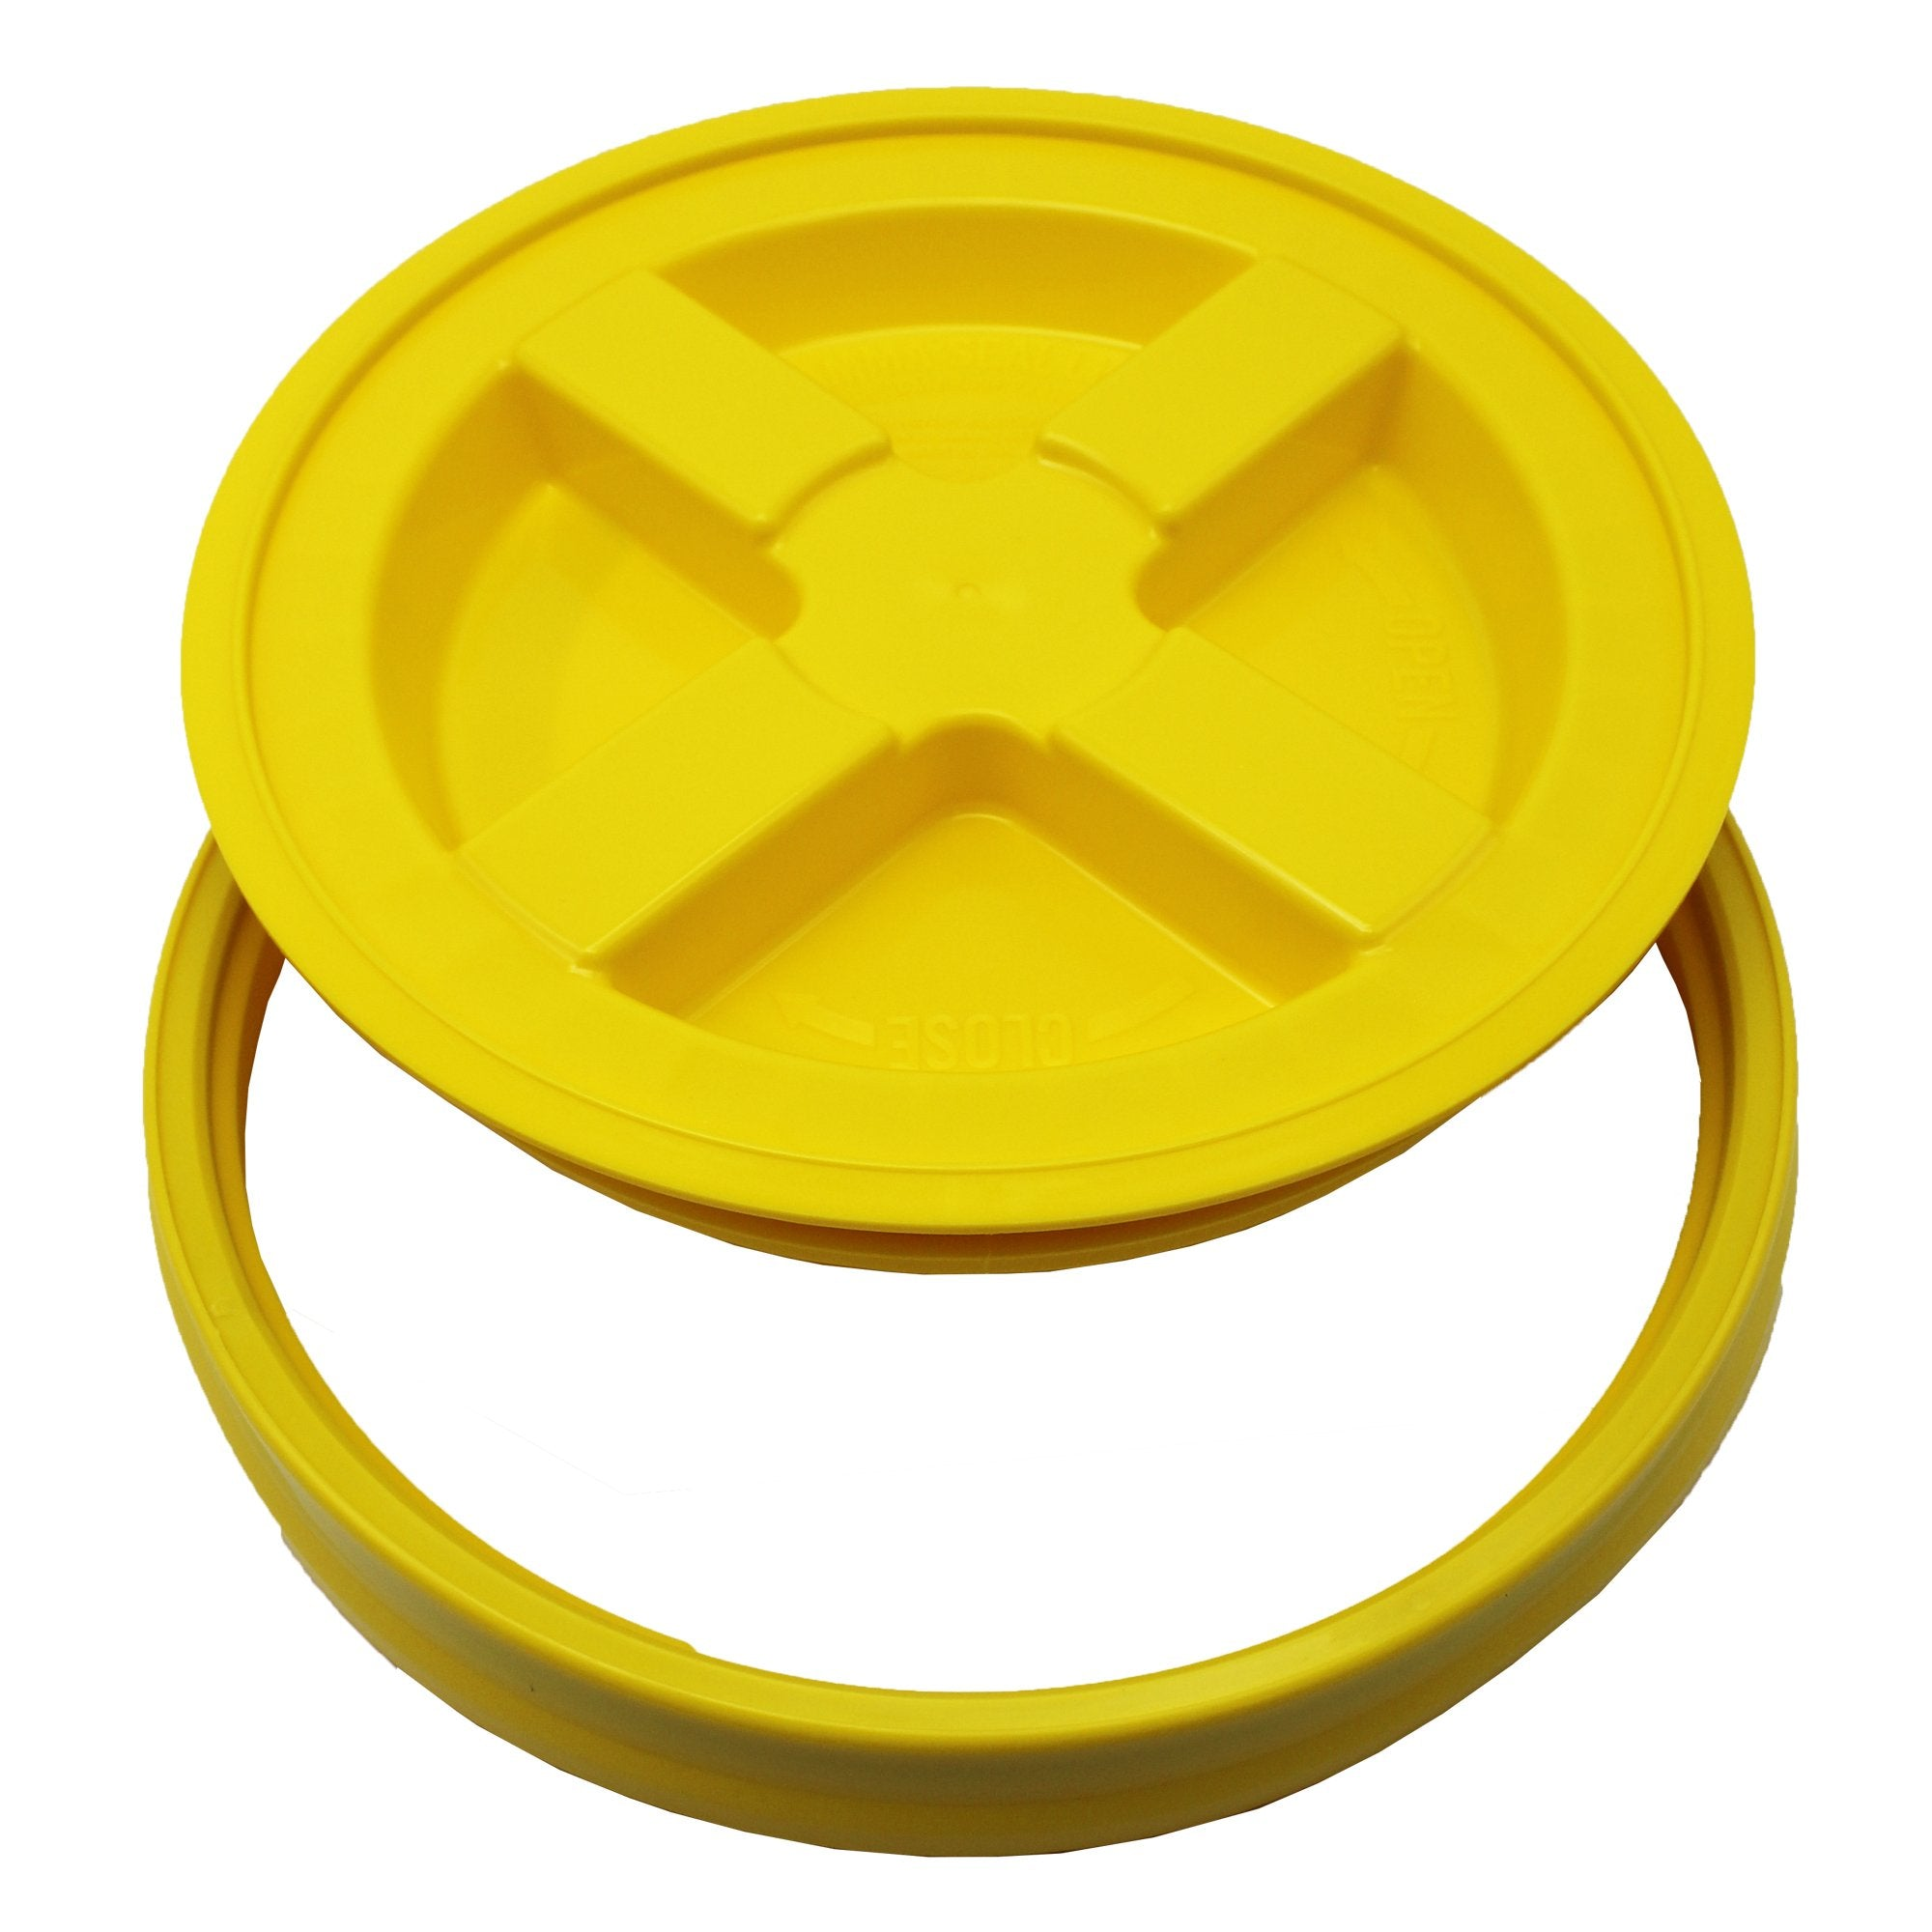 Gamma Seal Lid - Yellow (3.5 to 7.9 Gallon Bucket)